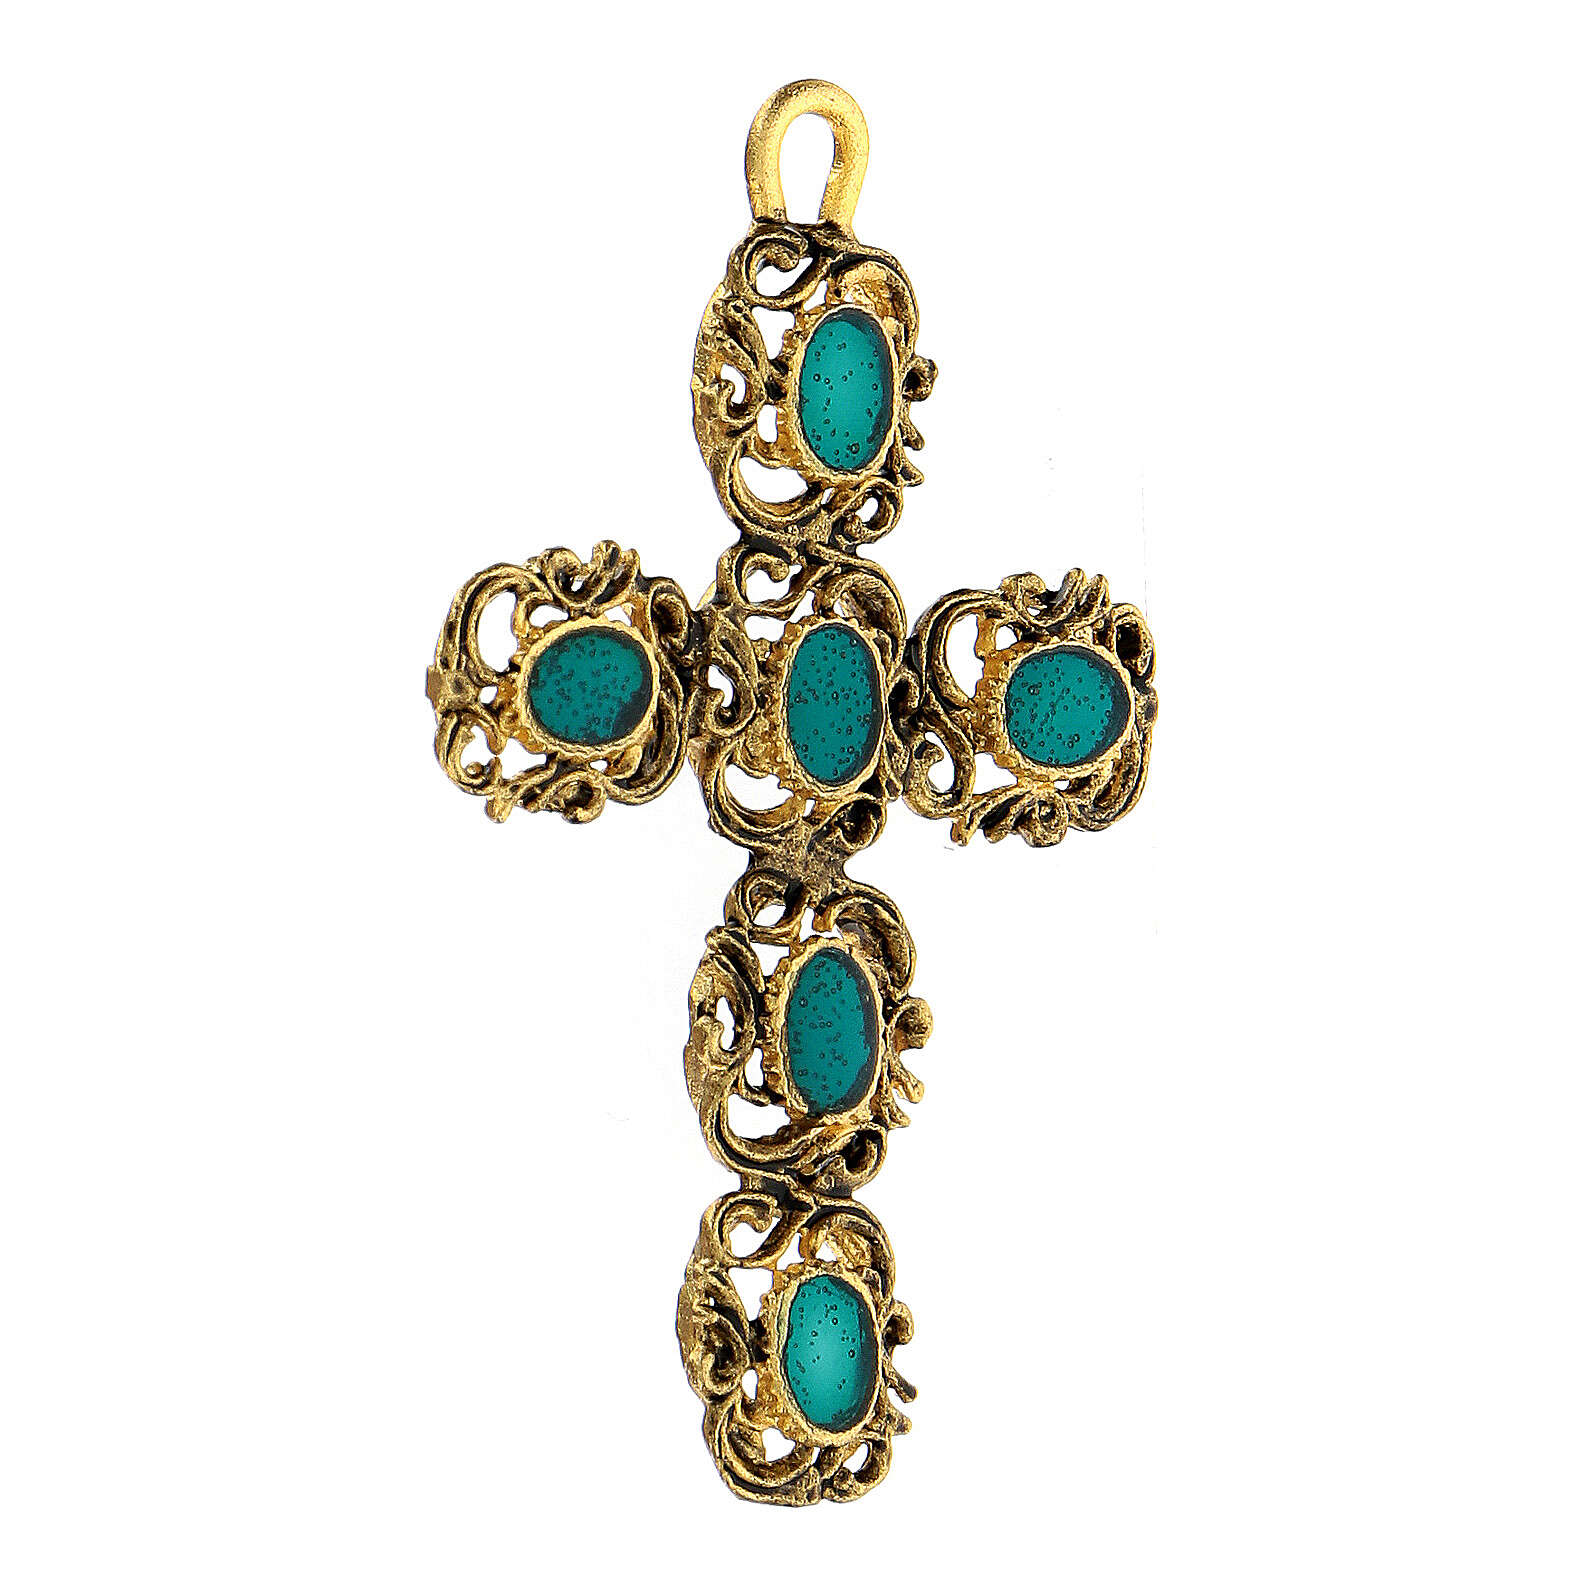 Cathedral cross pendant with green and golden decor 4